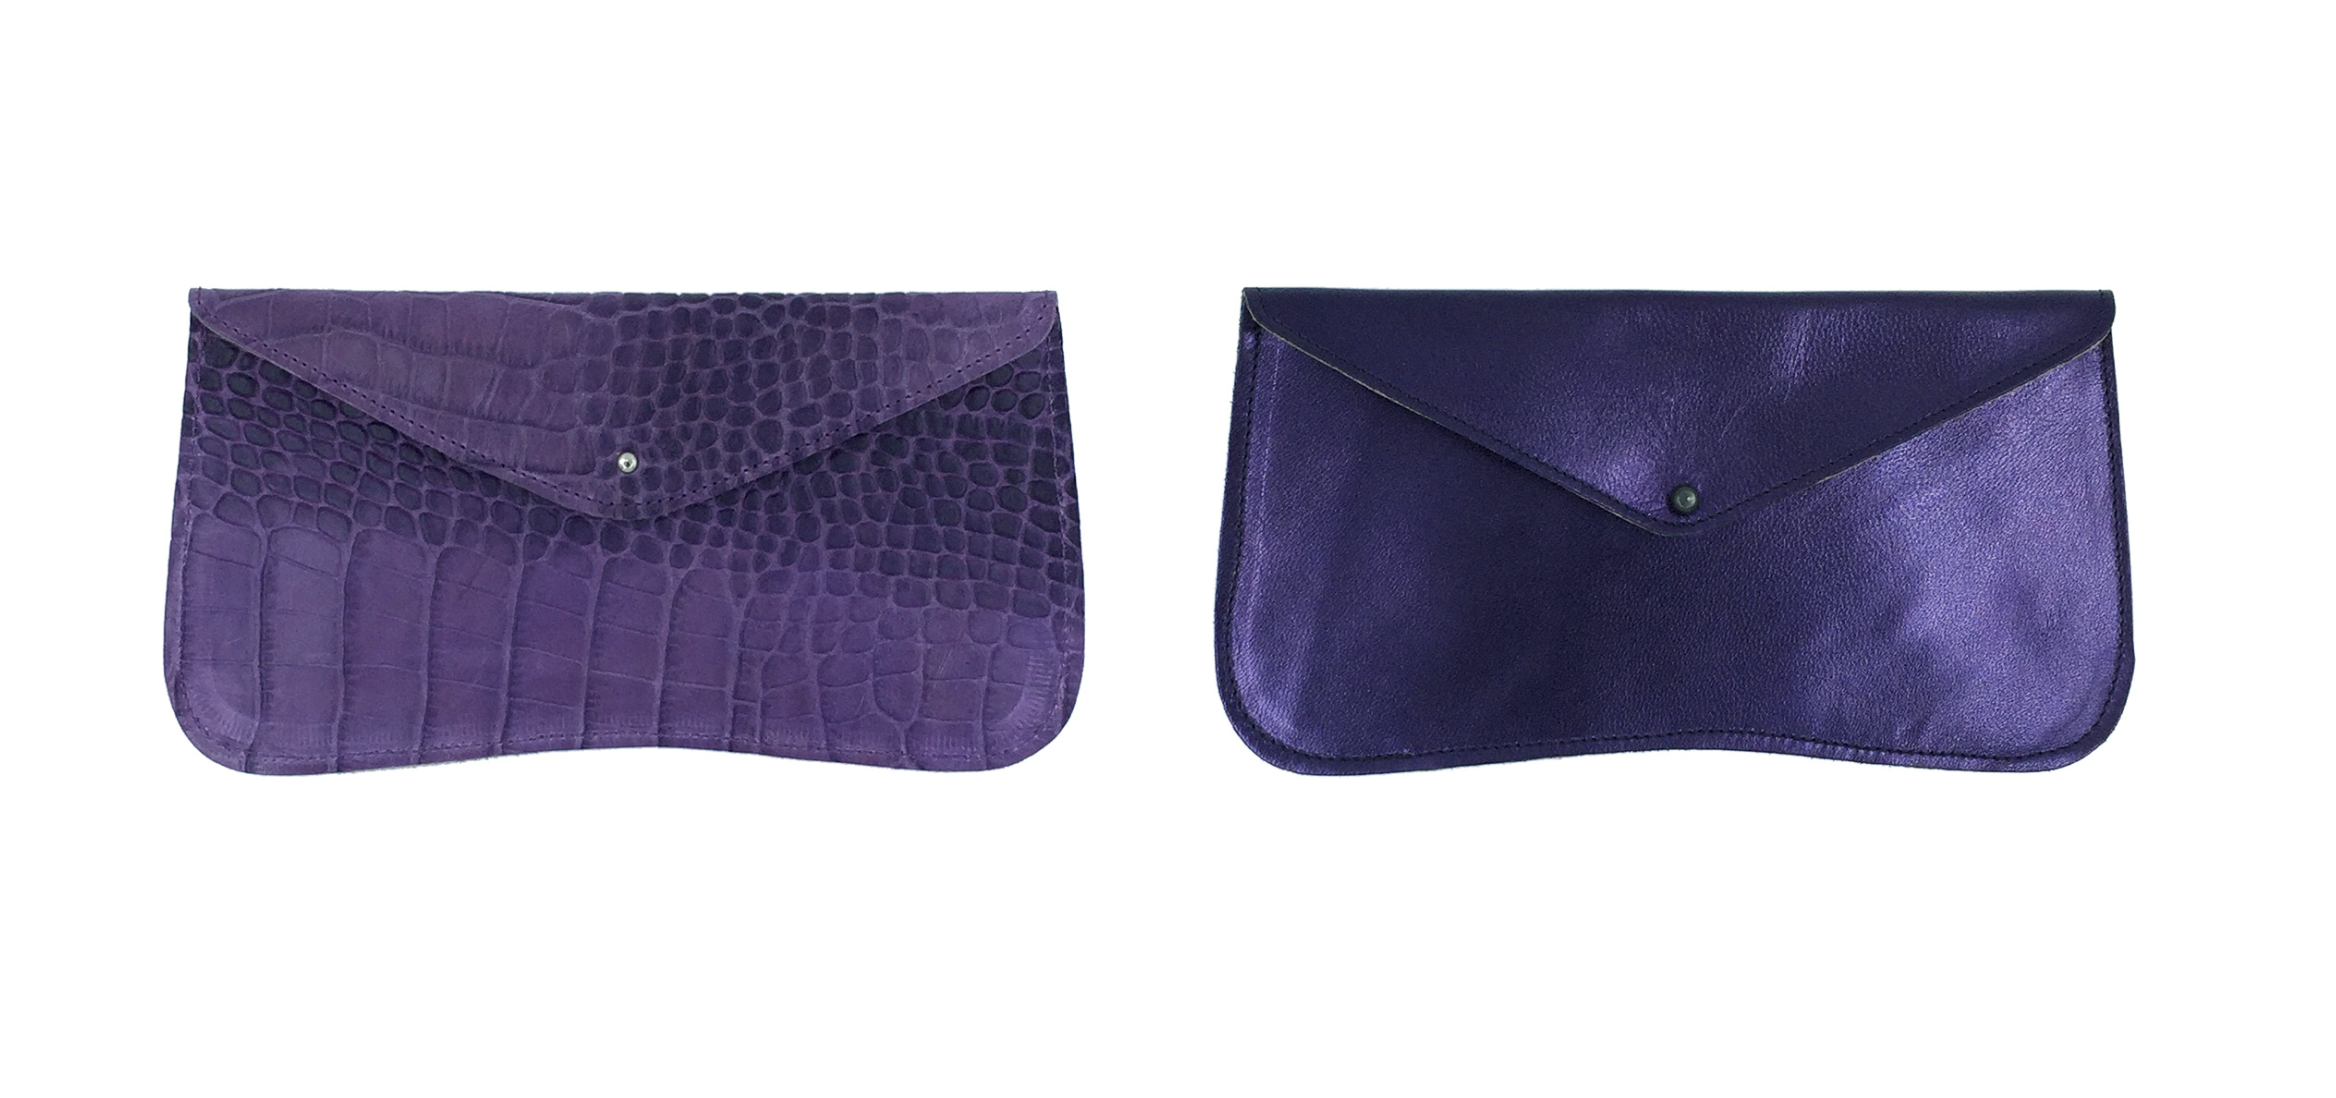 GAYLE WALLET    These purple beauties are available in croc embossed (left) or plain (right). Our wallets are made with high quality leather with a soft leather lining to give it a luxurious feel.     £34